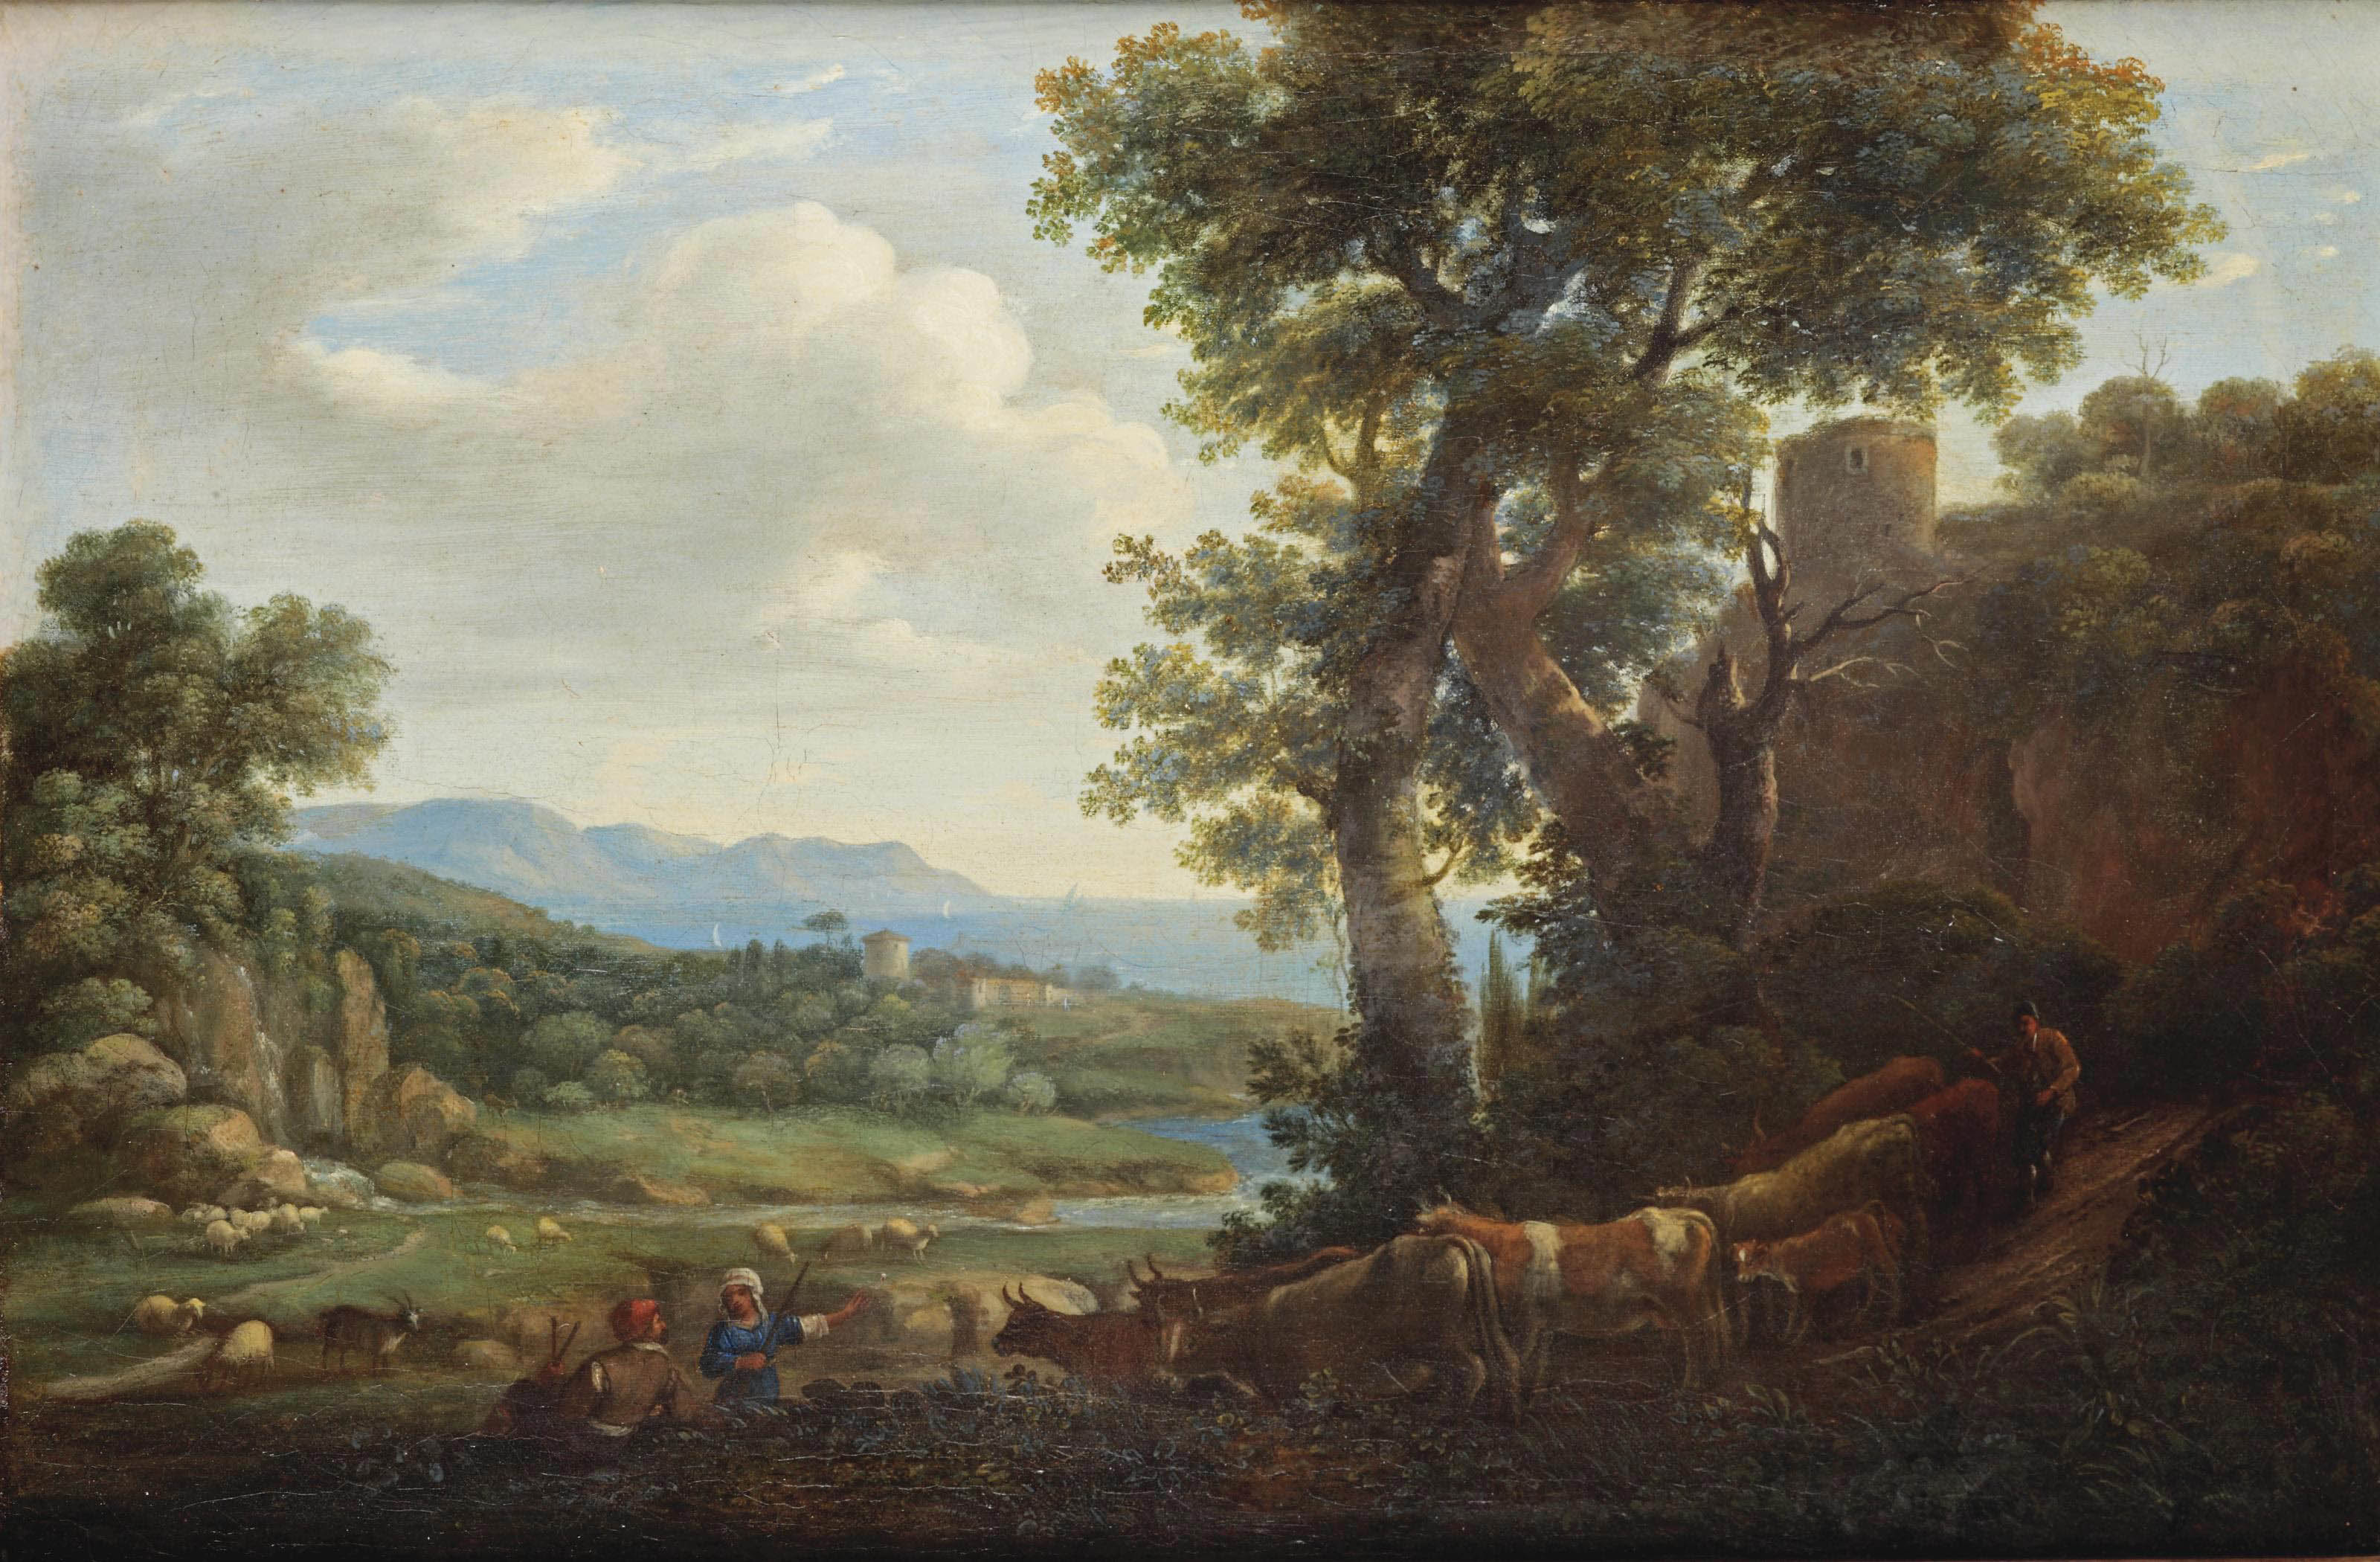 A rocky landscape with shepherds and their cattle